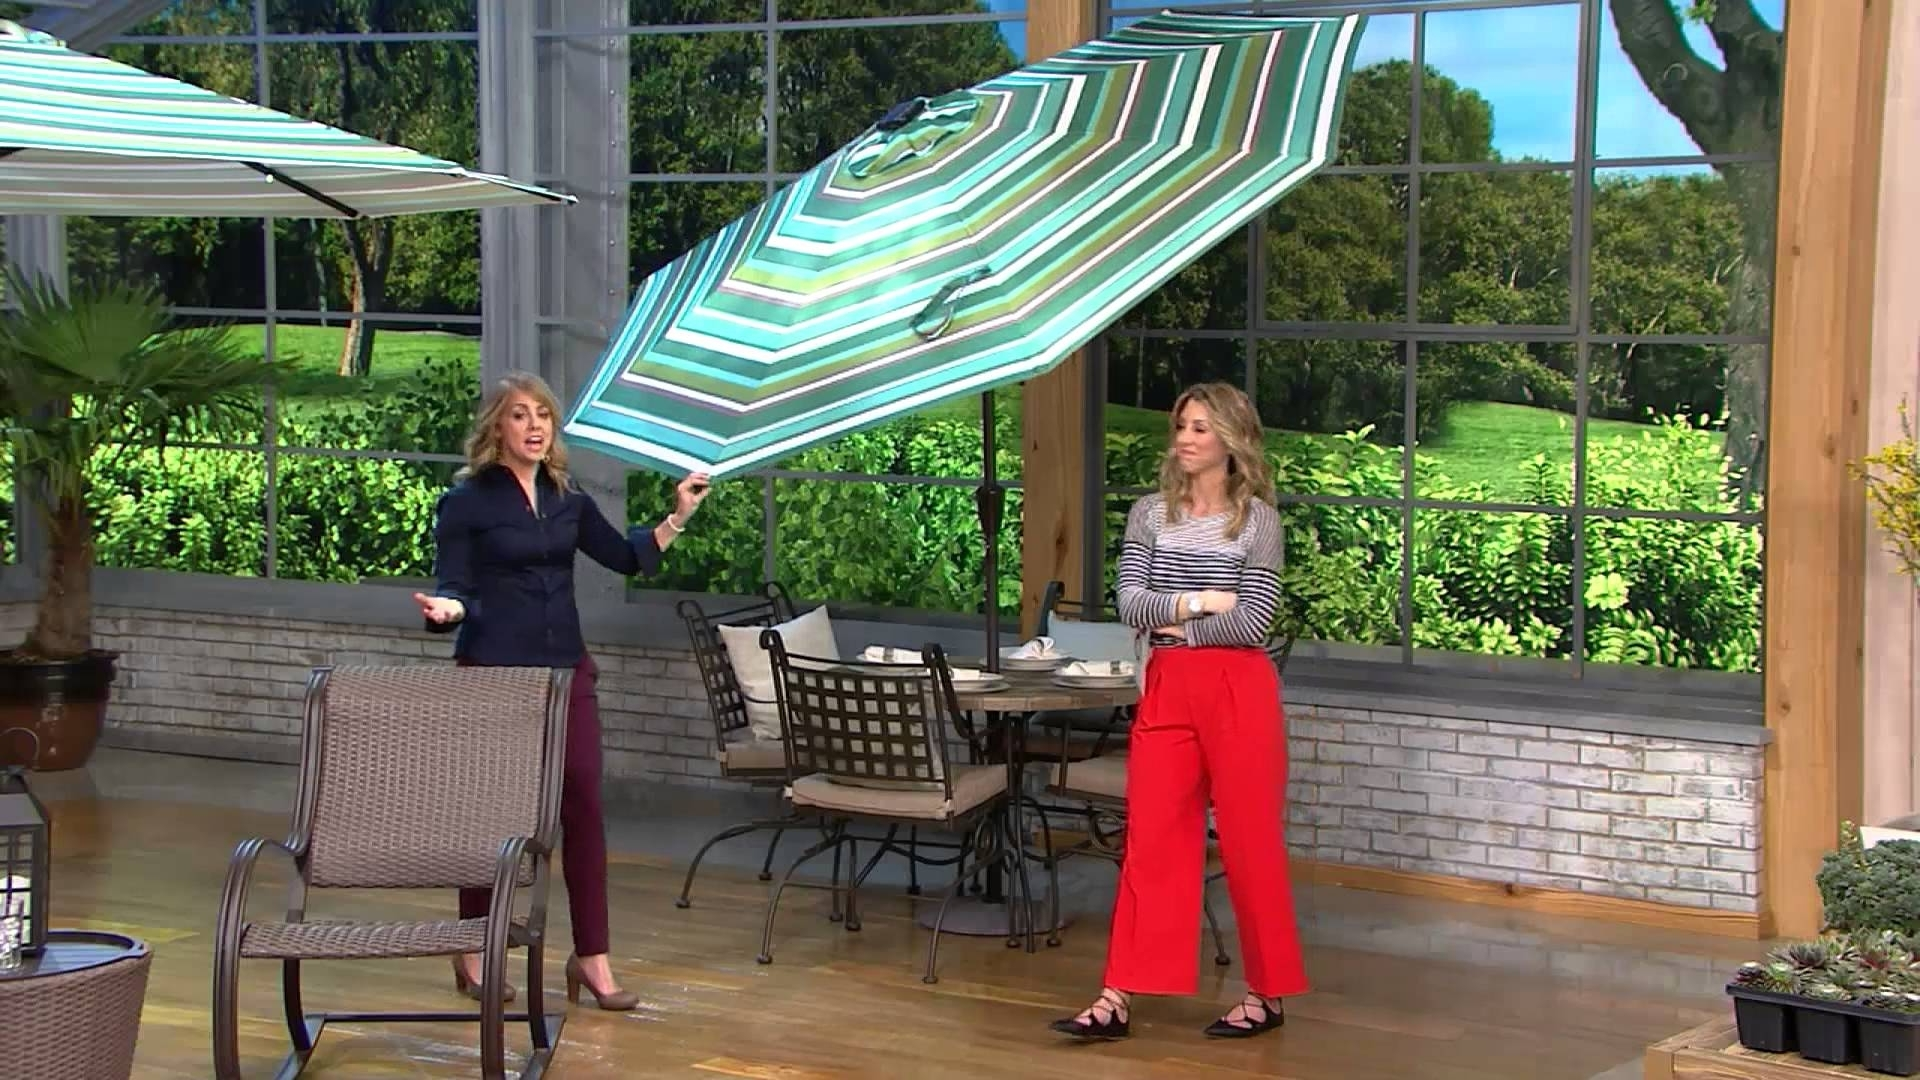 Atleisure 9' Light Solar Patio Umbrella With 44 Led's And Cover On For Recent Patio Umbrellas With Solar Lights (View 17 of 20)